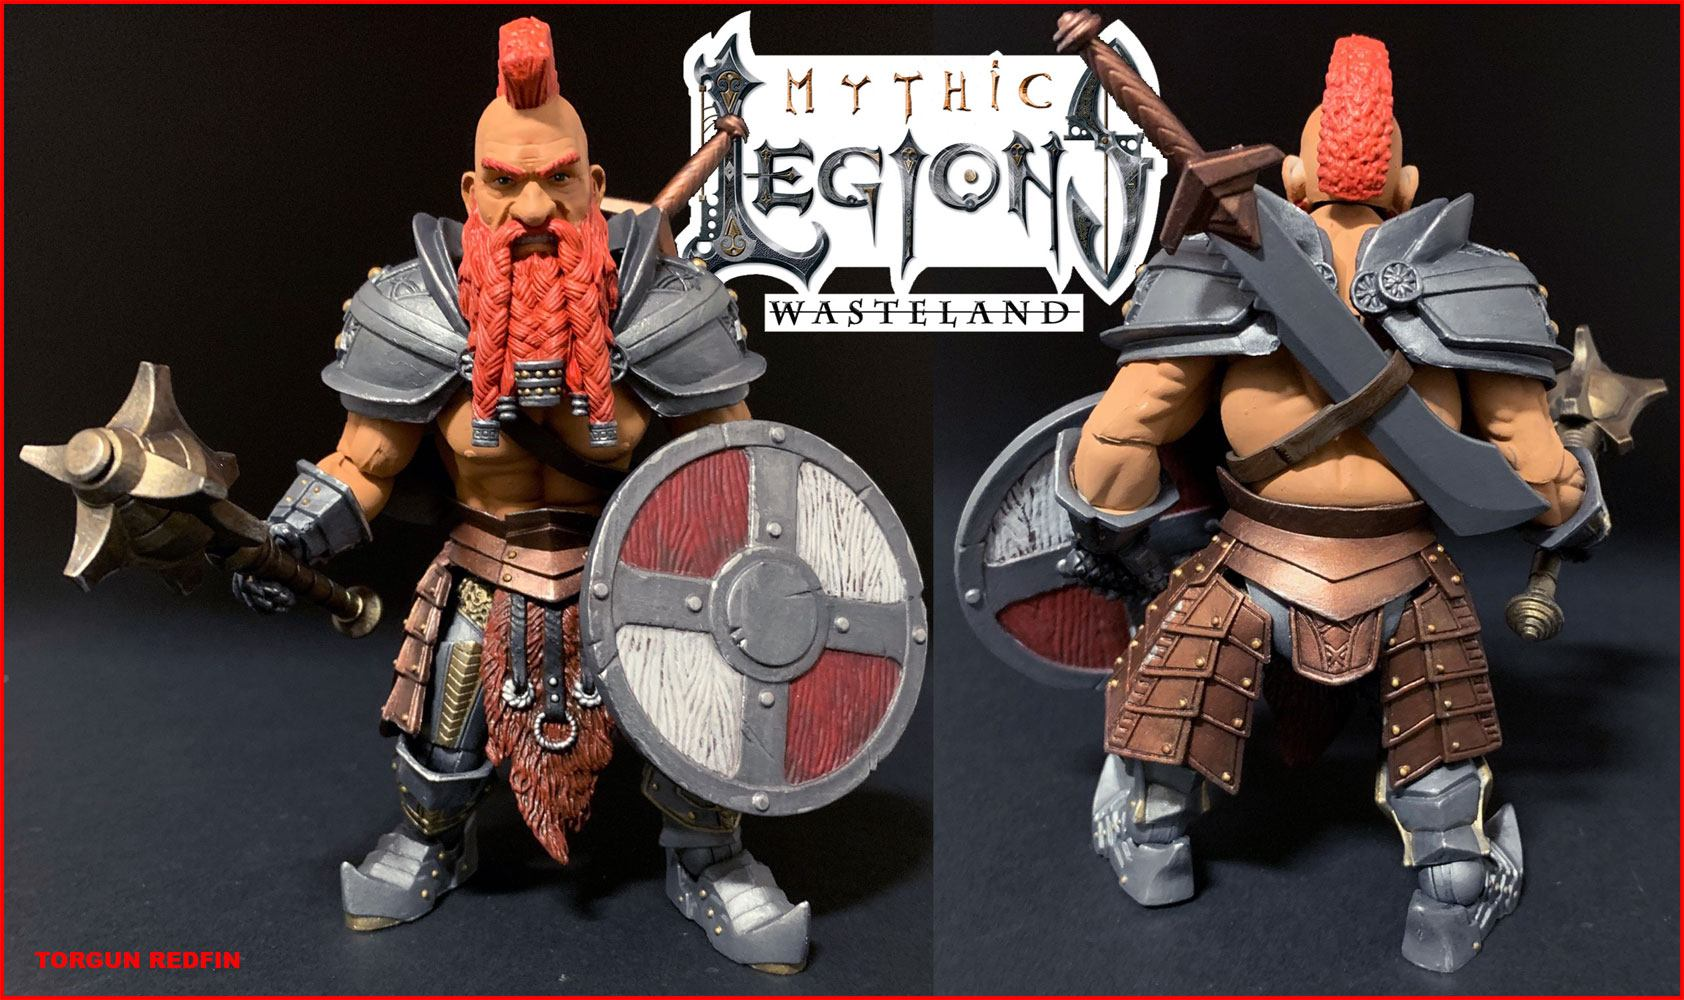 Mythic Legions: Wasteland Actionfigur Torgun Redfin 15 cm